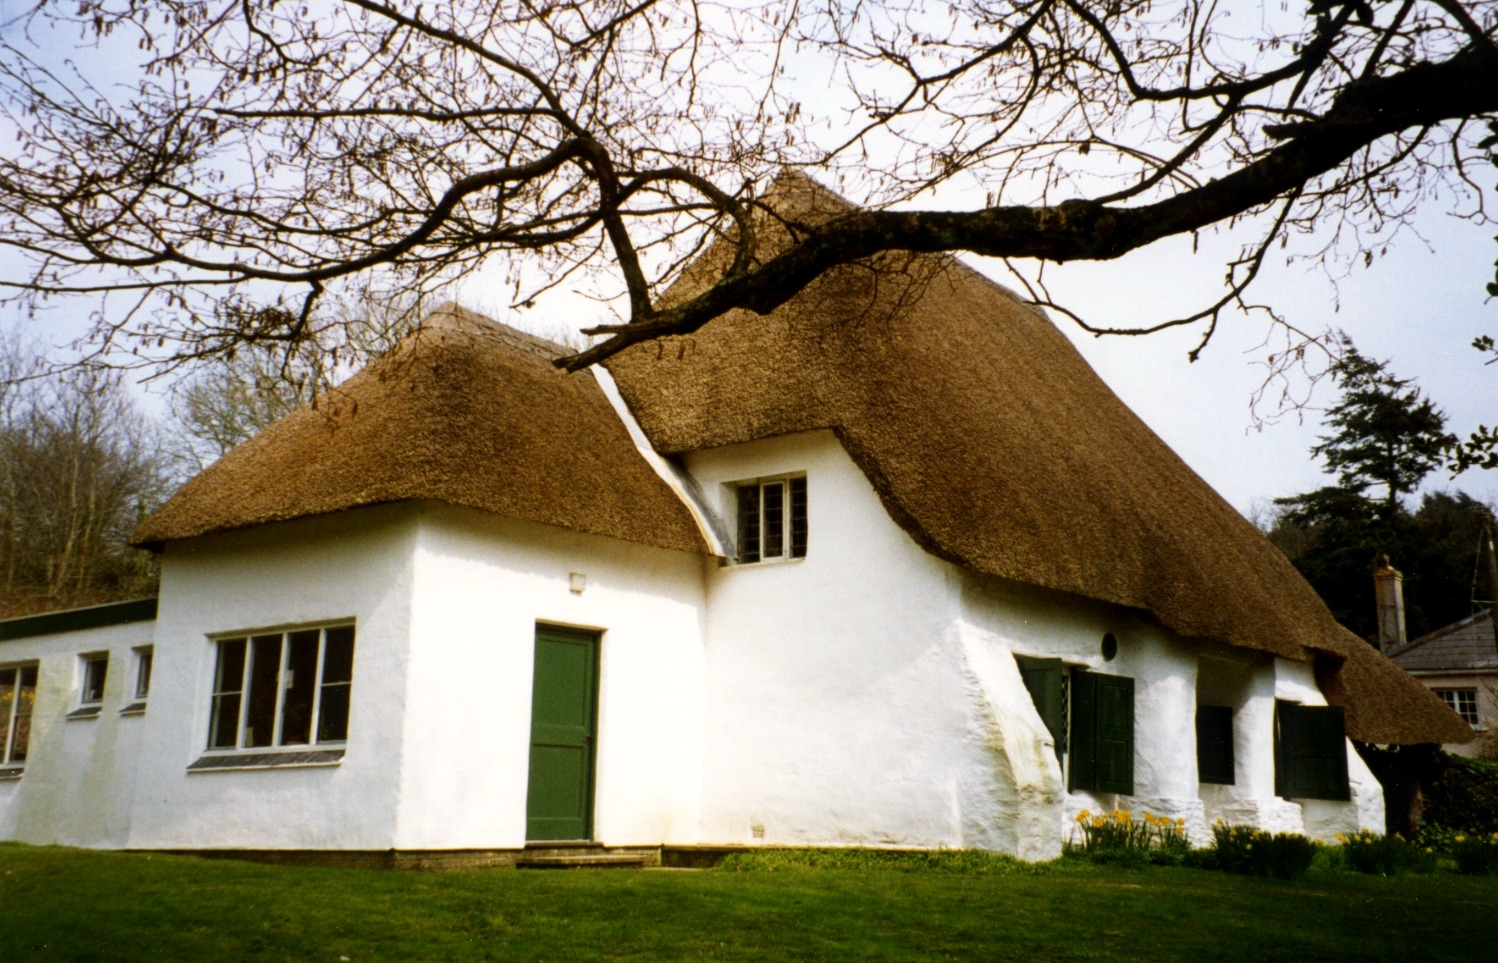 This is the Quaker Meeting House at Come-to-Good, near Feock, Cornwall, built in 1709-10 of cob and thatch and the loft ( gallery ) added in 1717.